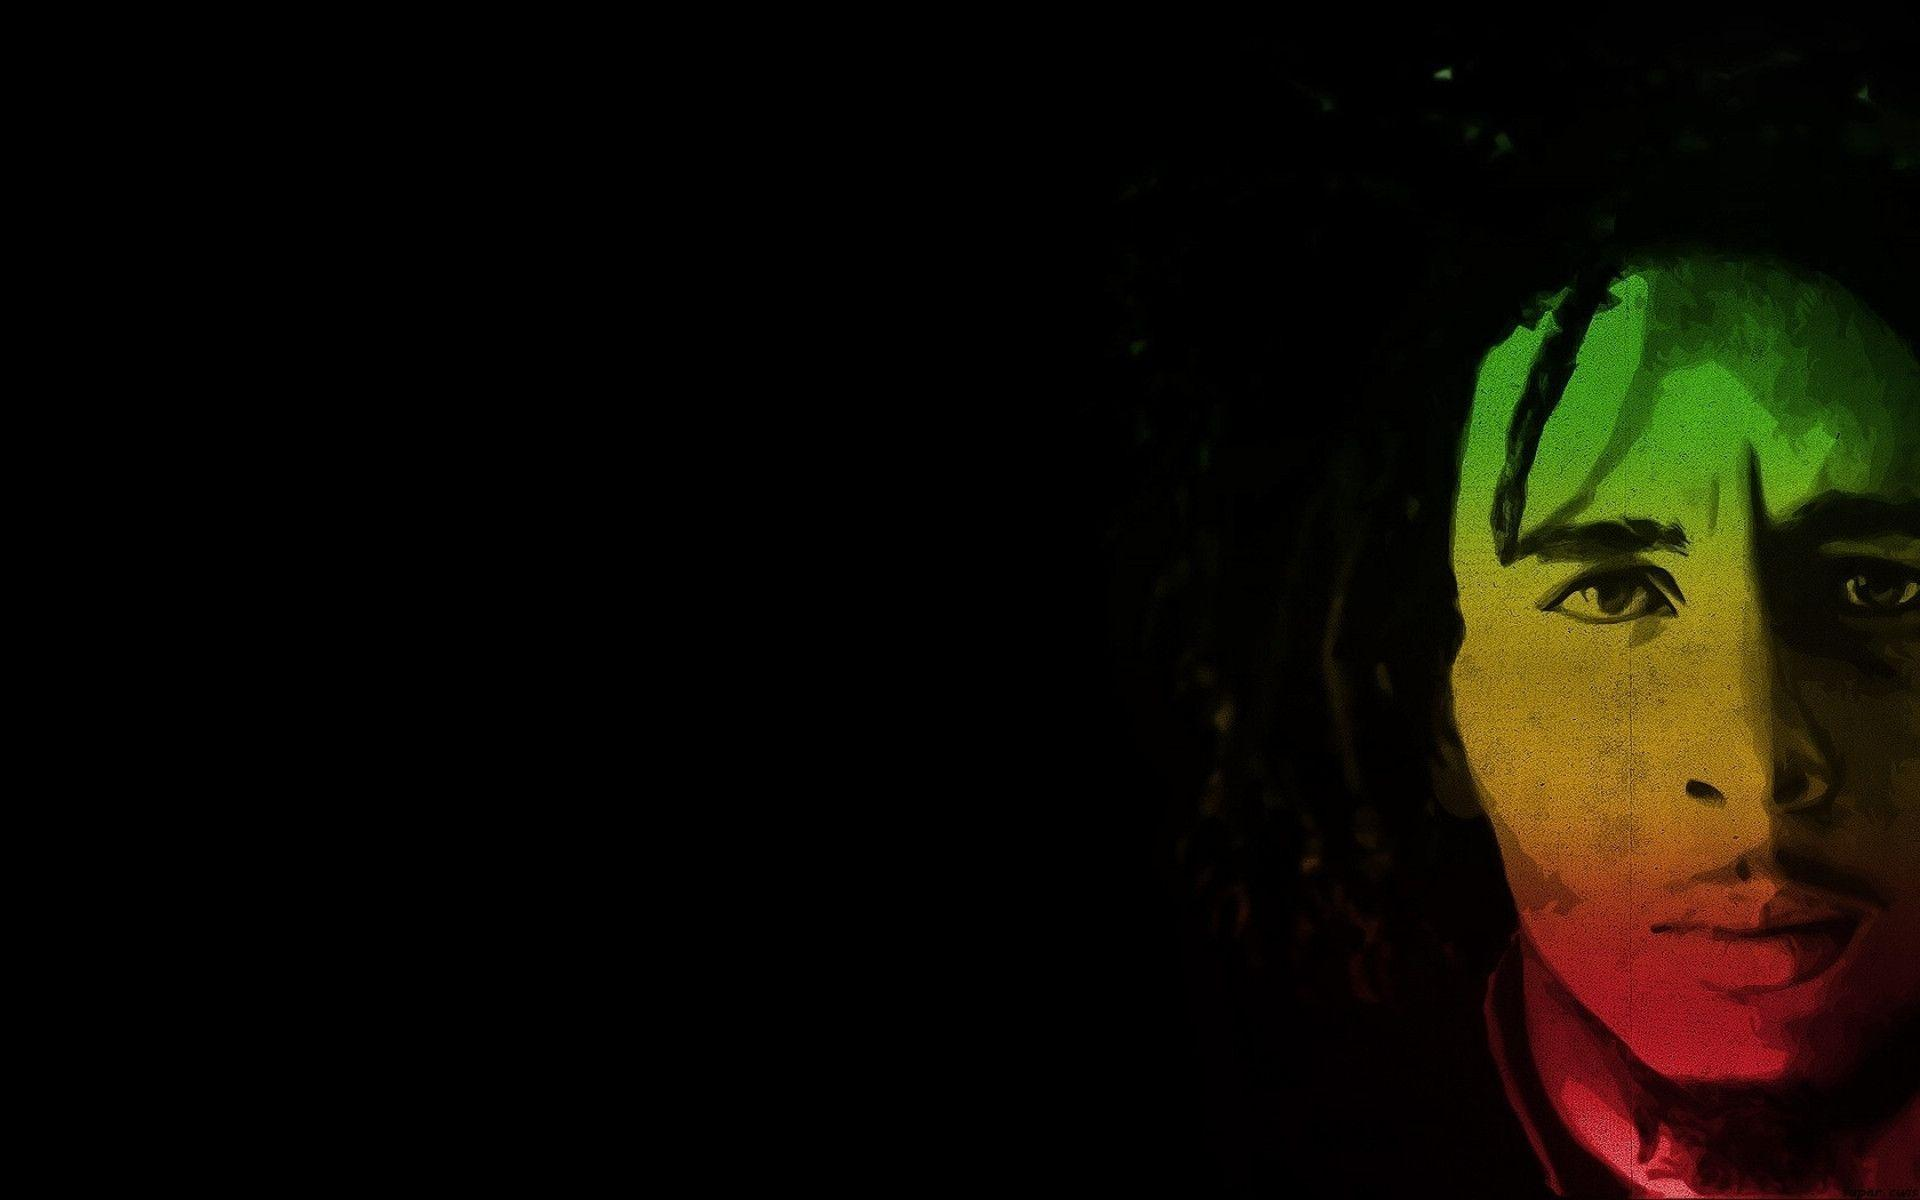 Rasta Wallpapers HD - Wallpaper cave